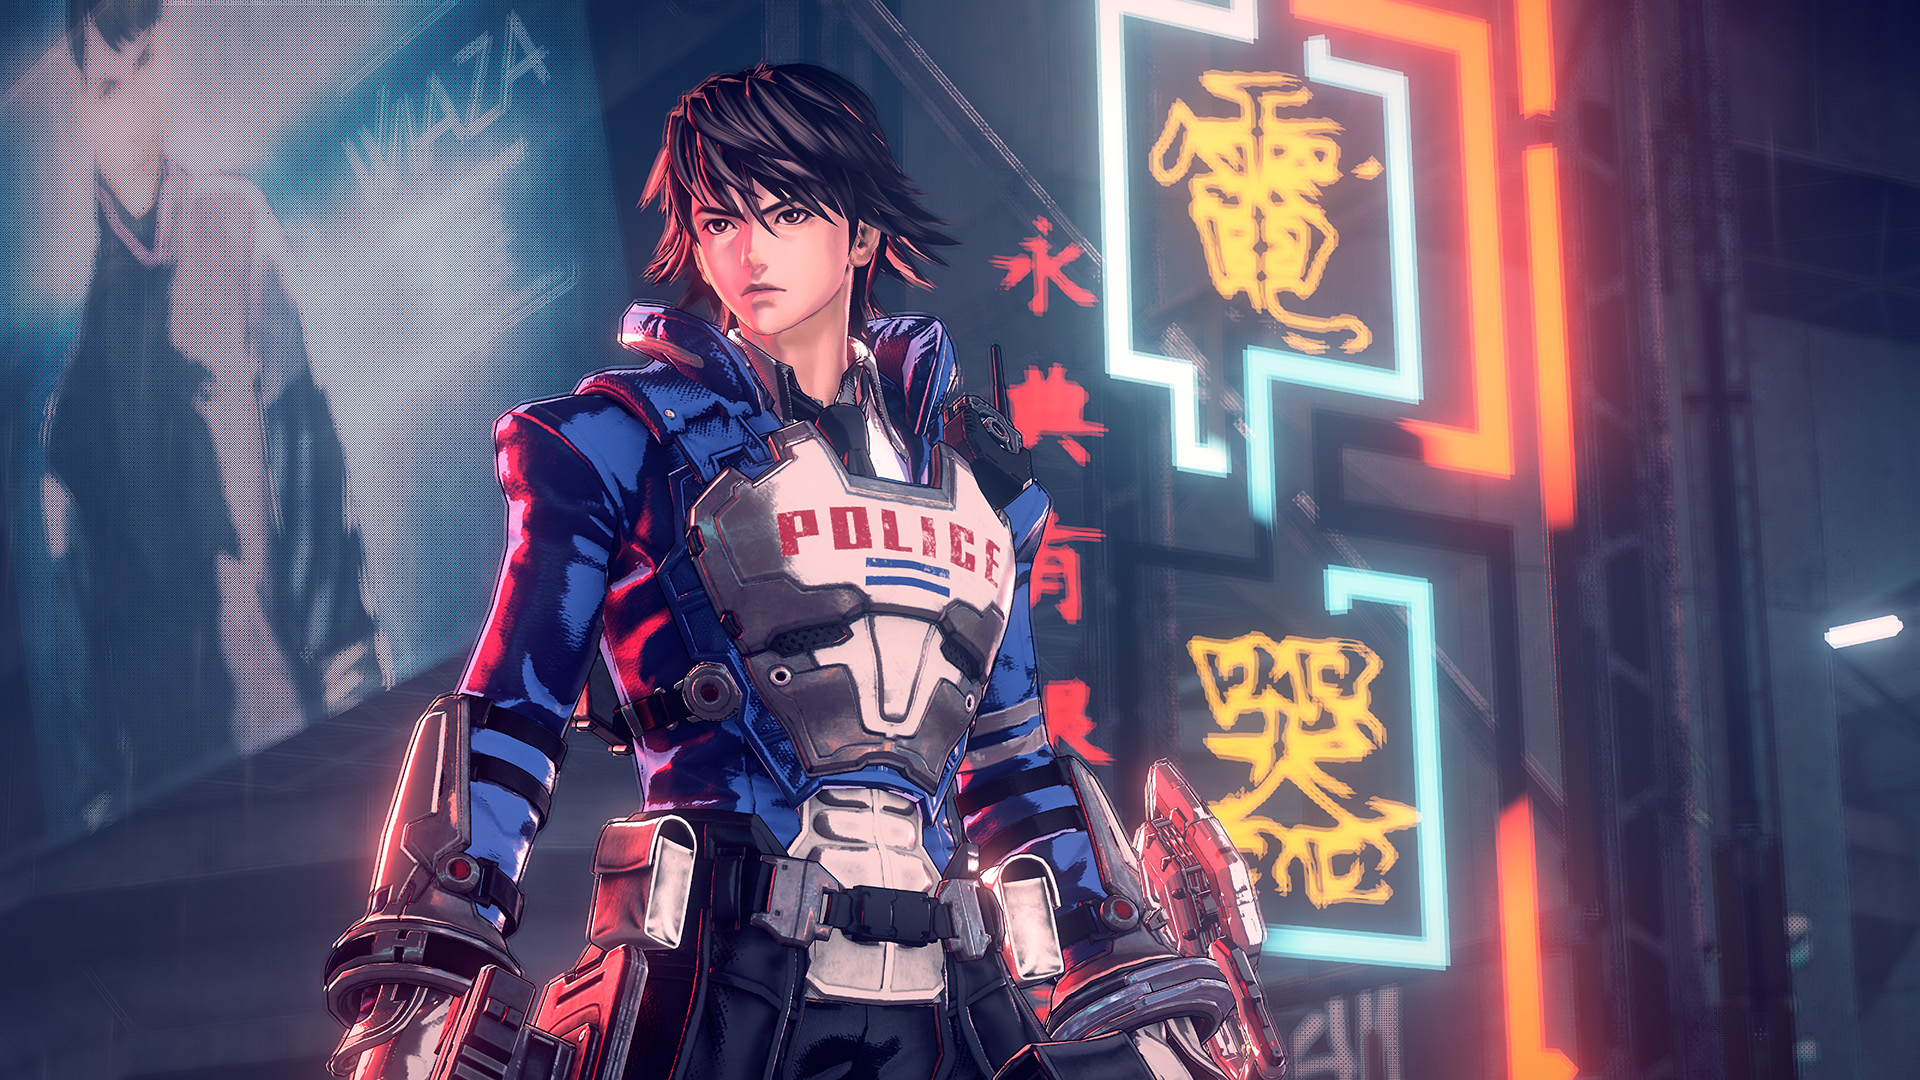 Astral Chain's director talks about Nier, the police, and cyberpunk